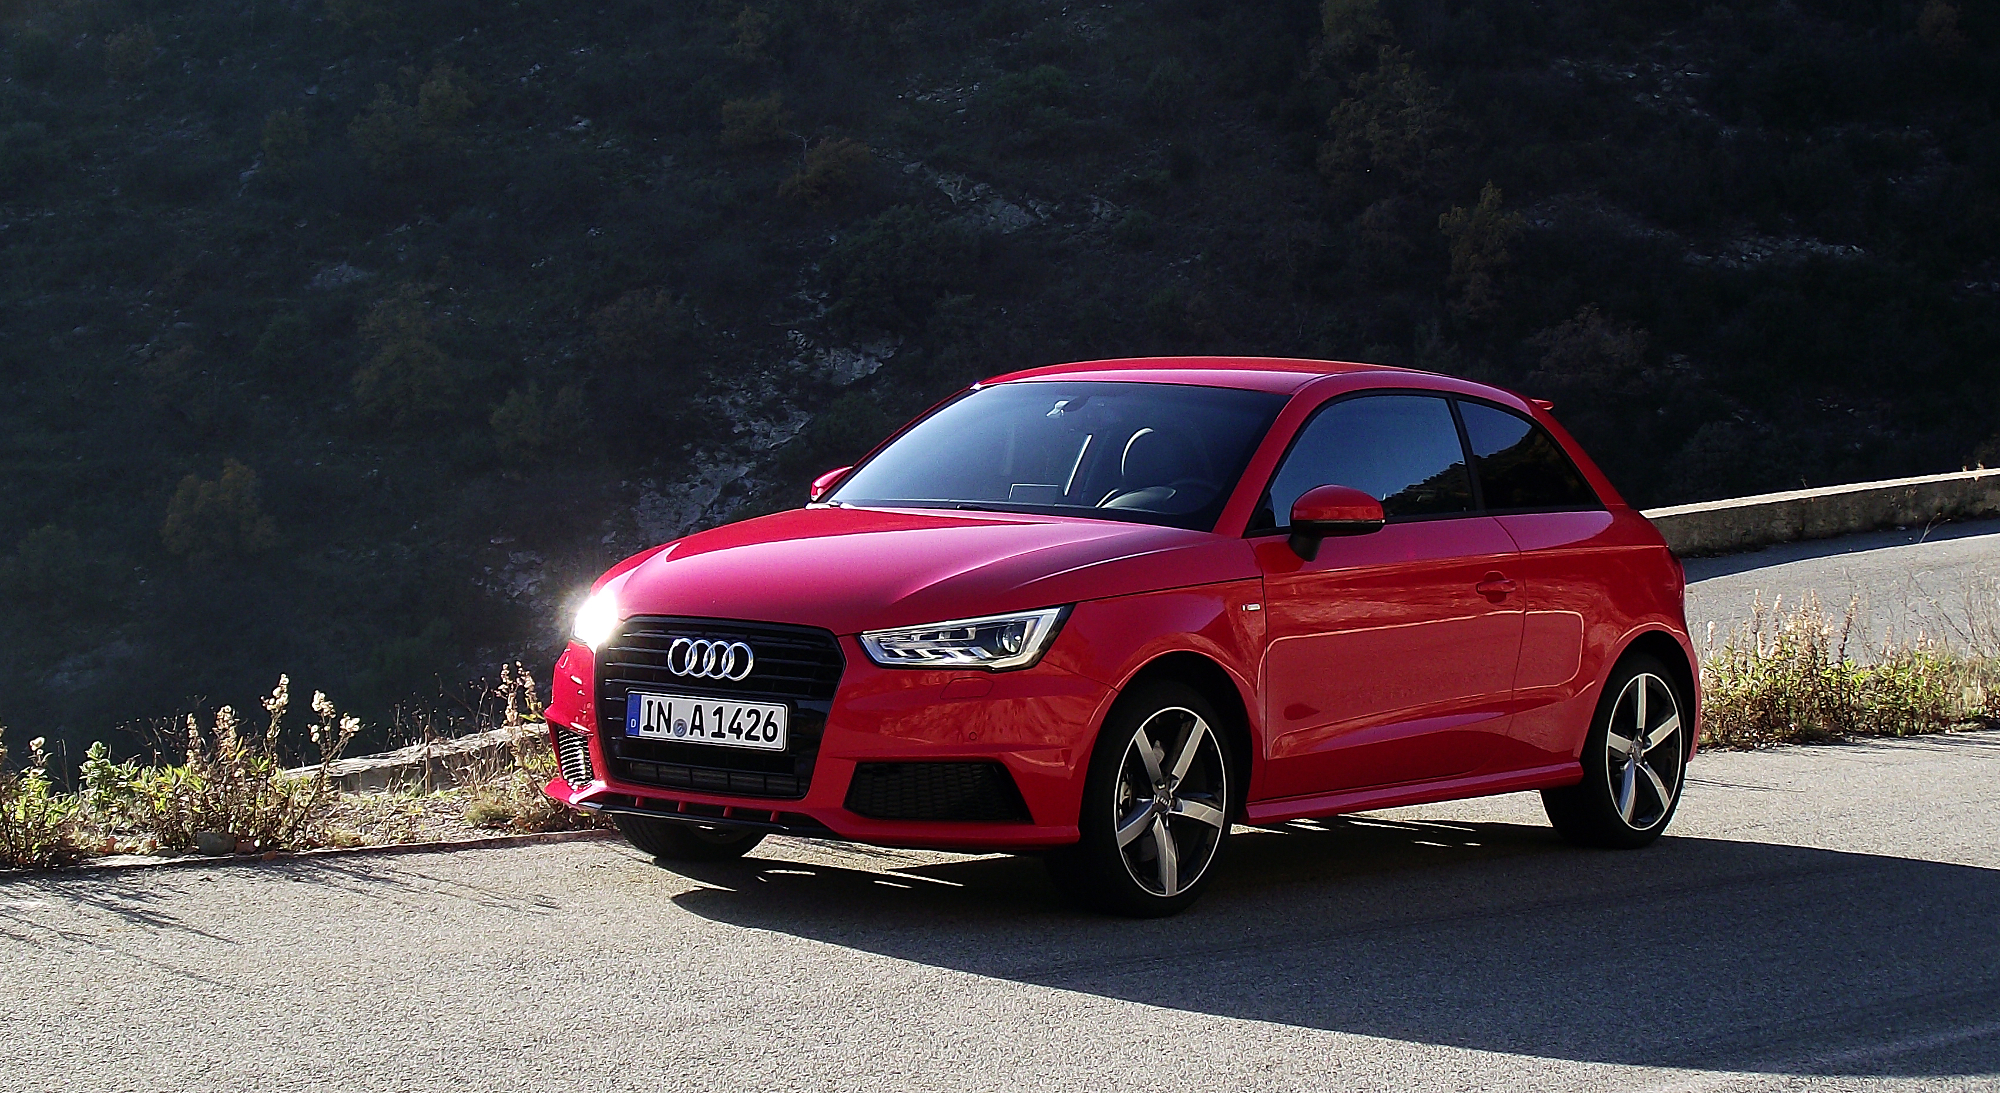 2015 audi a1 8x1 pictures information and specs auto. Black Bedroom Furniture Sets. Home Design Ideas